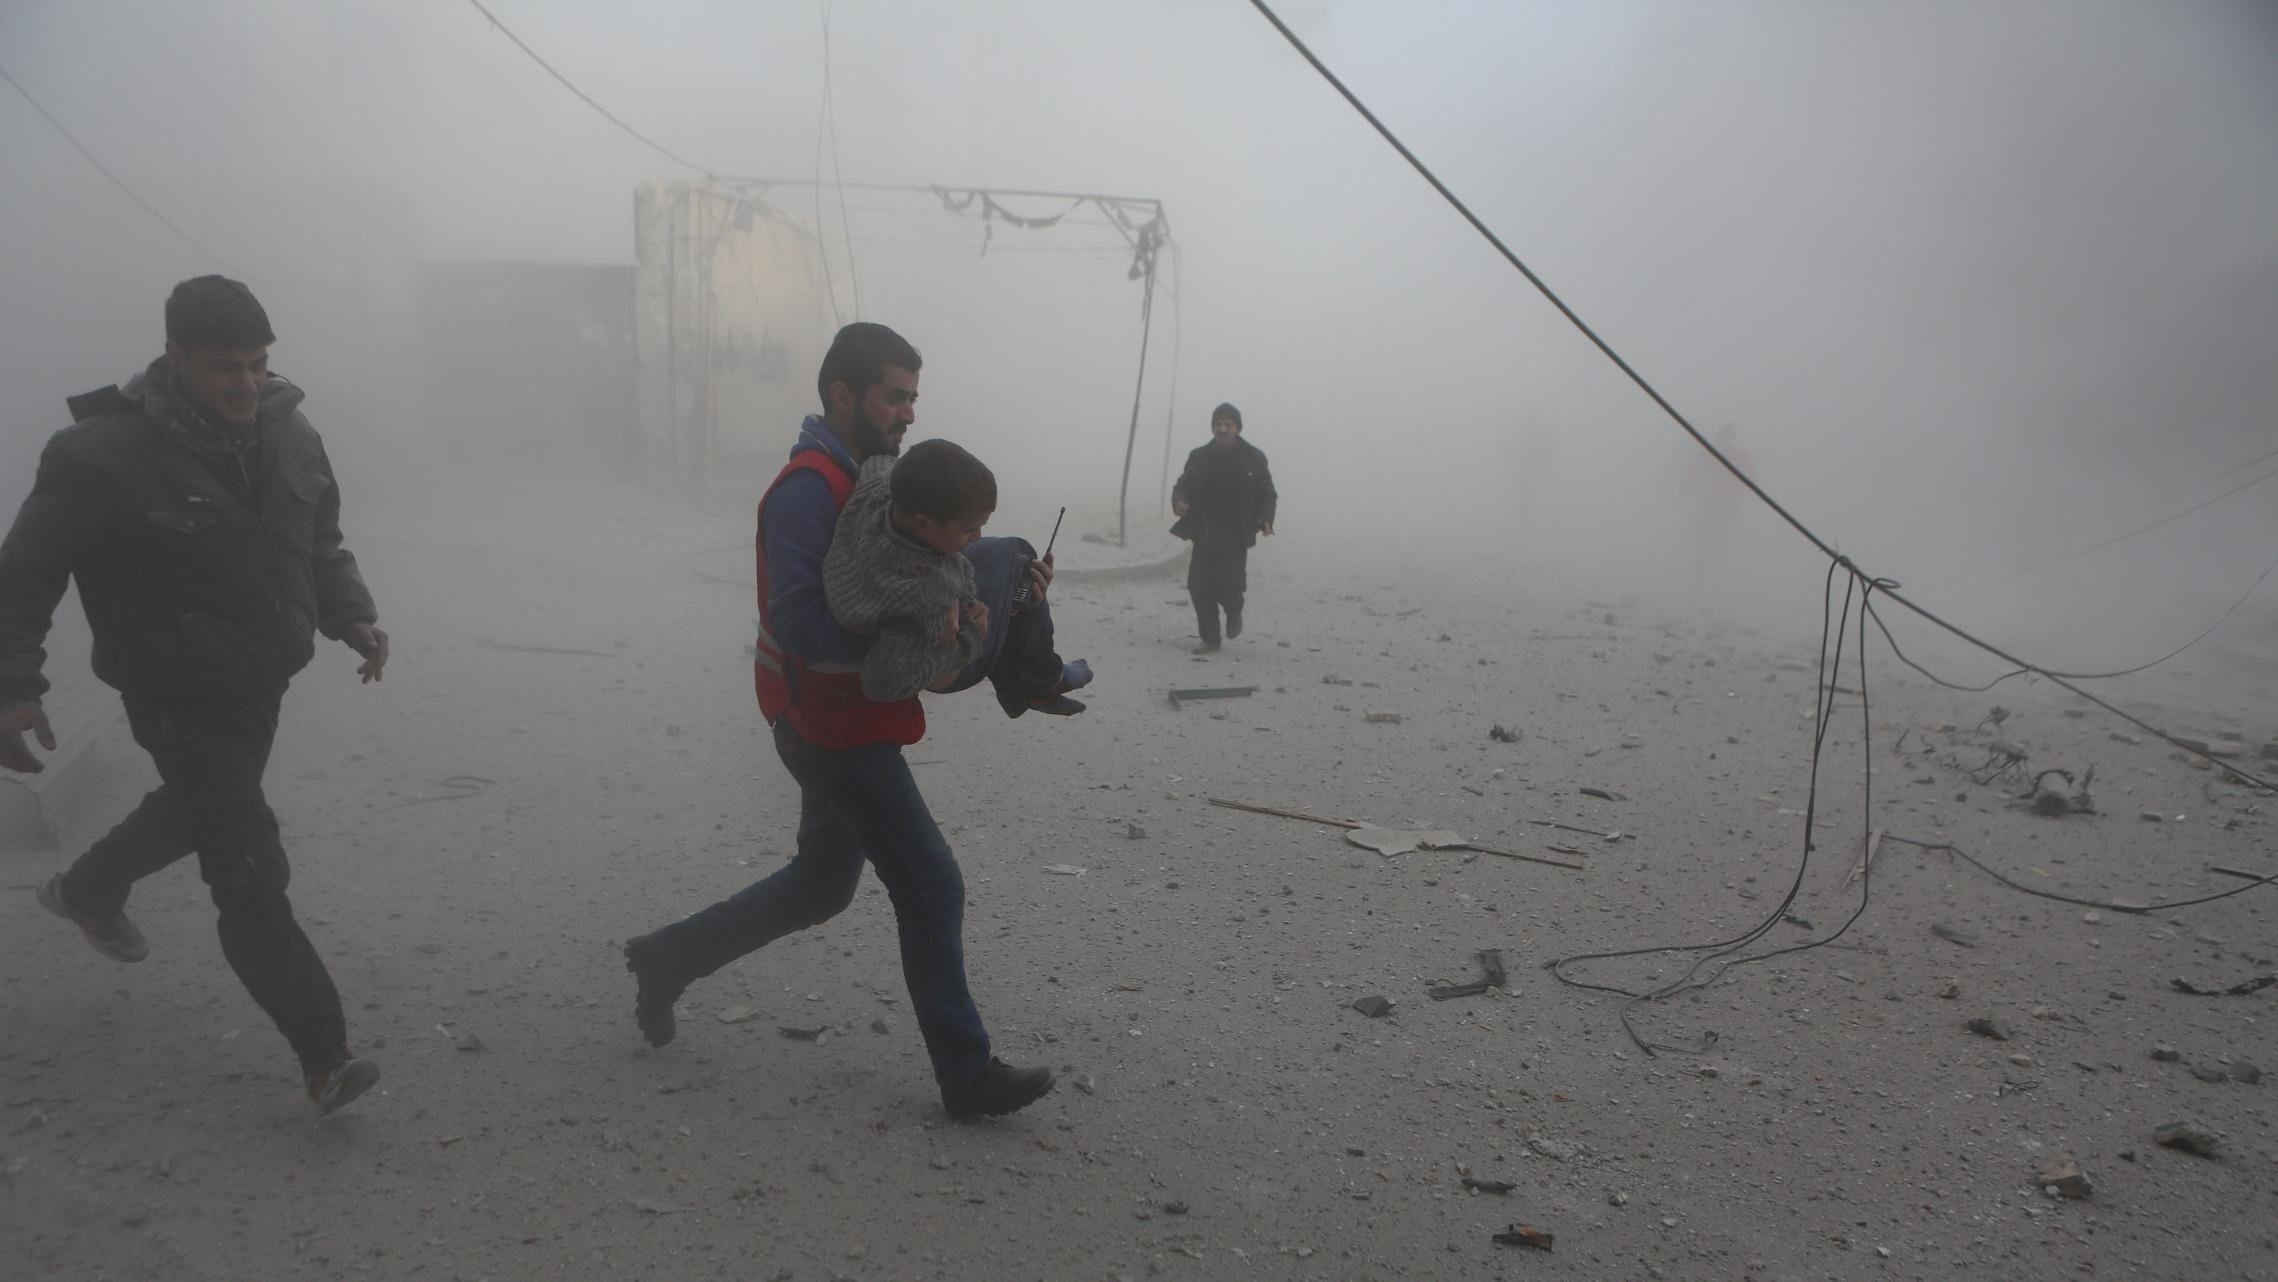 More than 200 civilians have been killed since Monday in Syrian government airstrikes on parts of rebel-held Eastern Ghouta near Damascus, the Syrian Observatory for Human Rights said Thursday. Among the deaths were 54 children and 41 women.